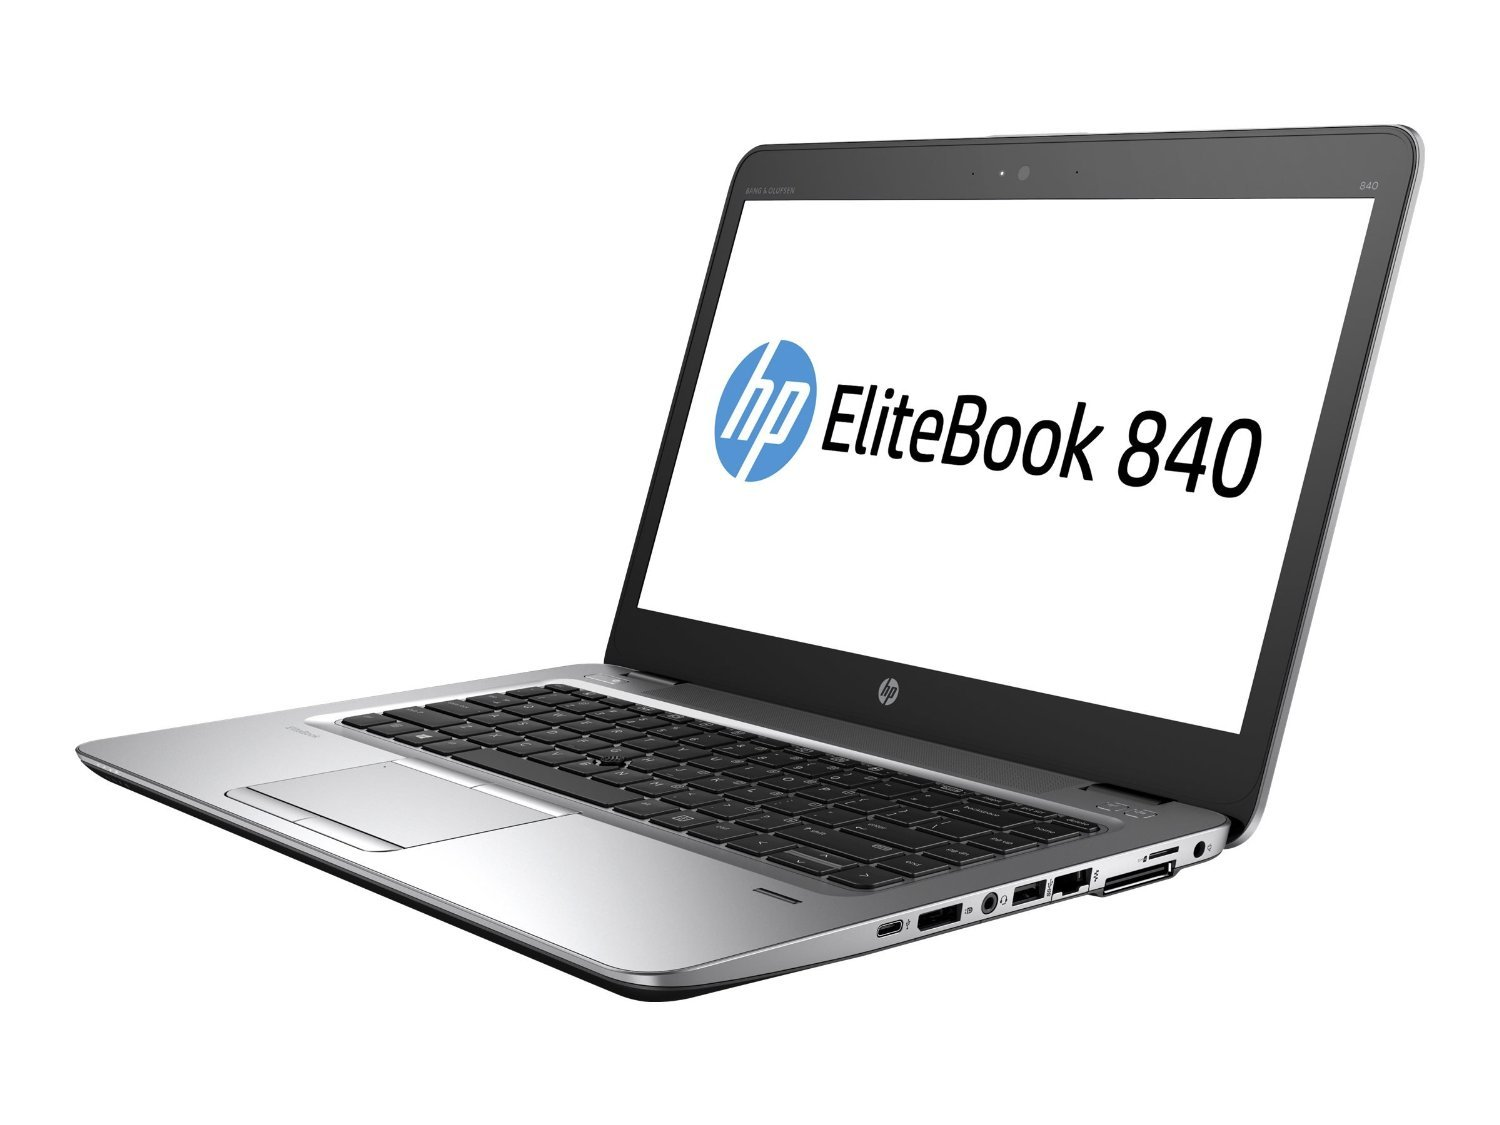 2018 HP Elitebook 840 G3 14'' FHD LED Laptop Computer, Intel Core i5-6200U up to 2.80GHz, 8GB DDR4, 256GB SSD, Media Card Reader, 720p Camera, Windows 10 Professional (Certified Refurbished)